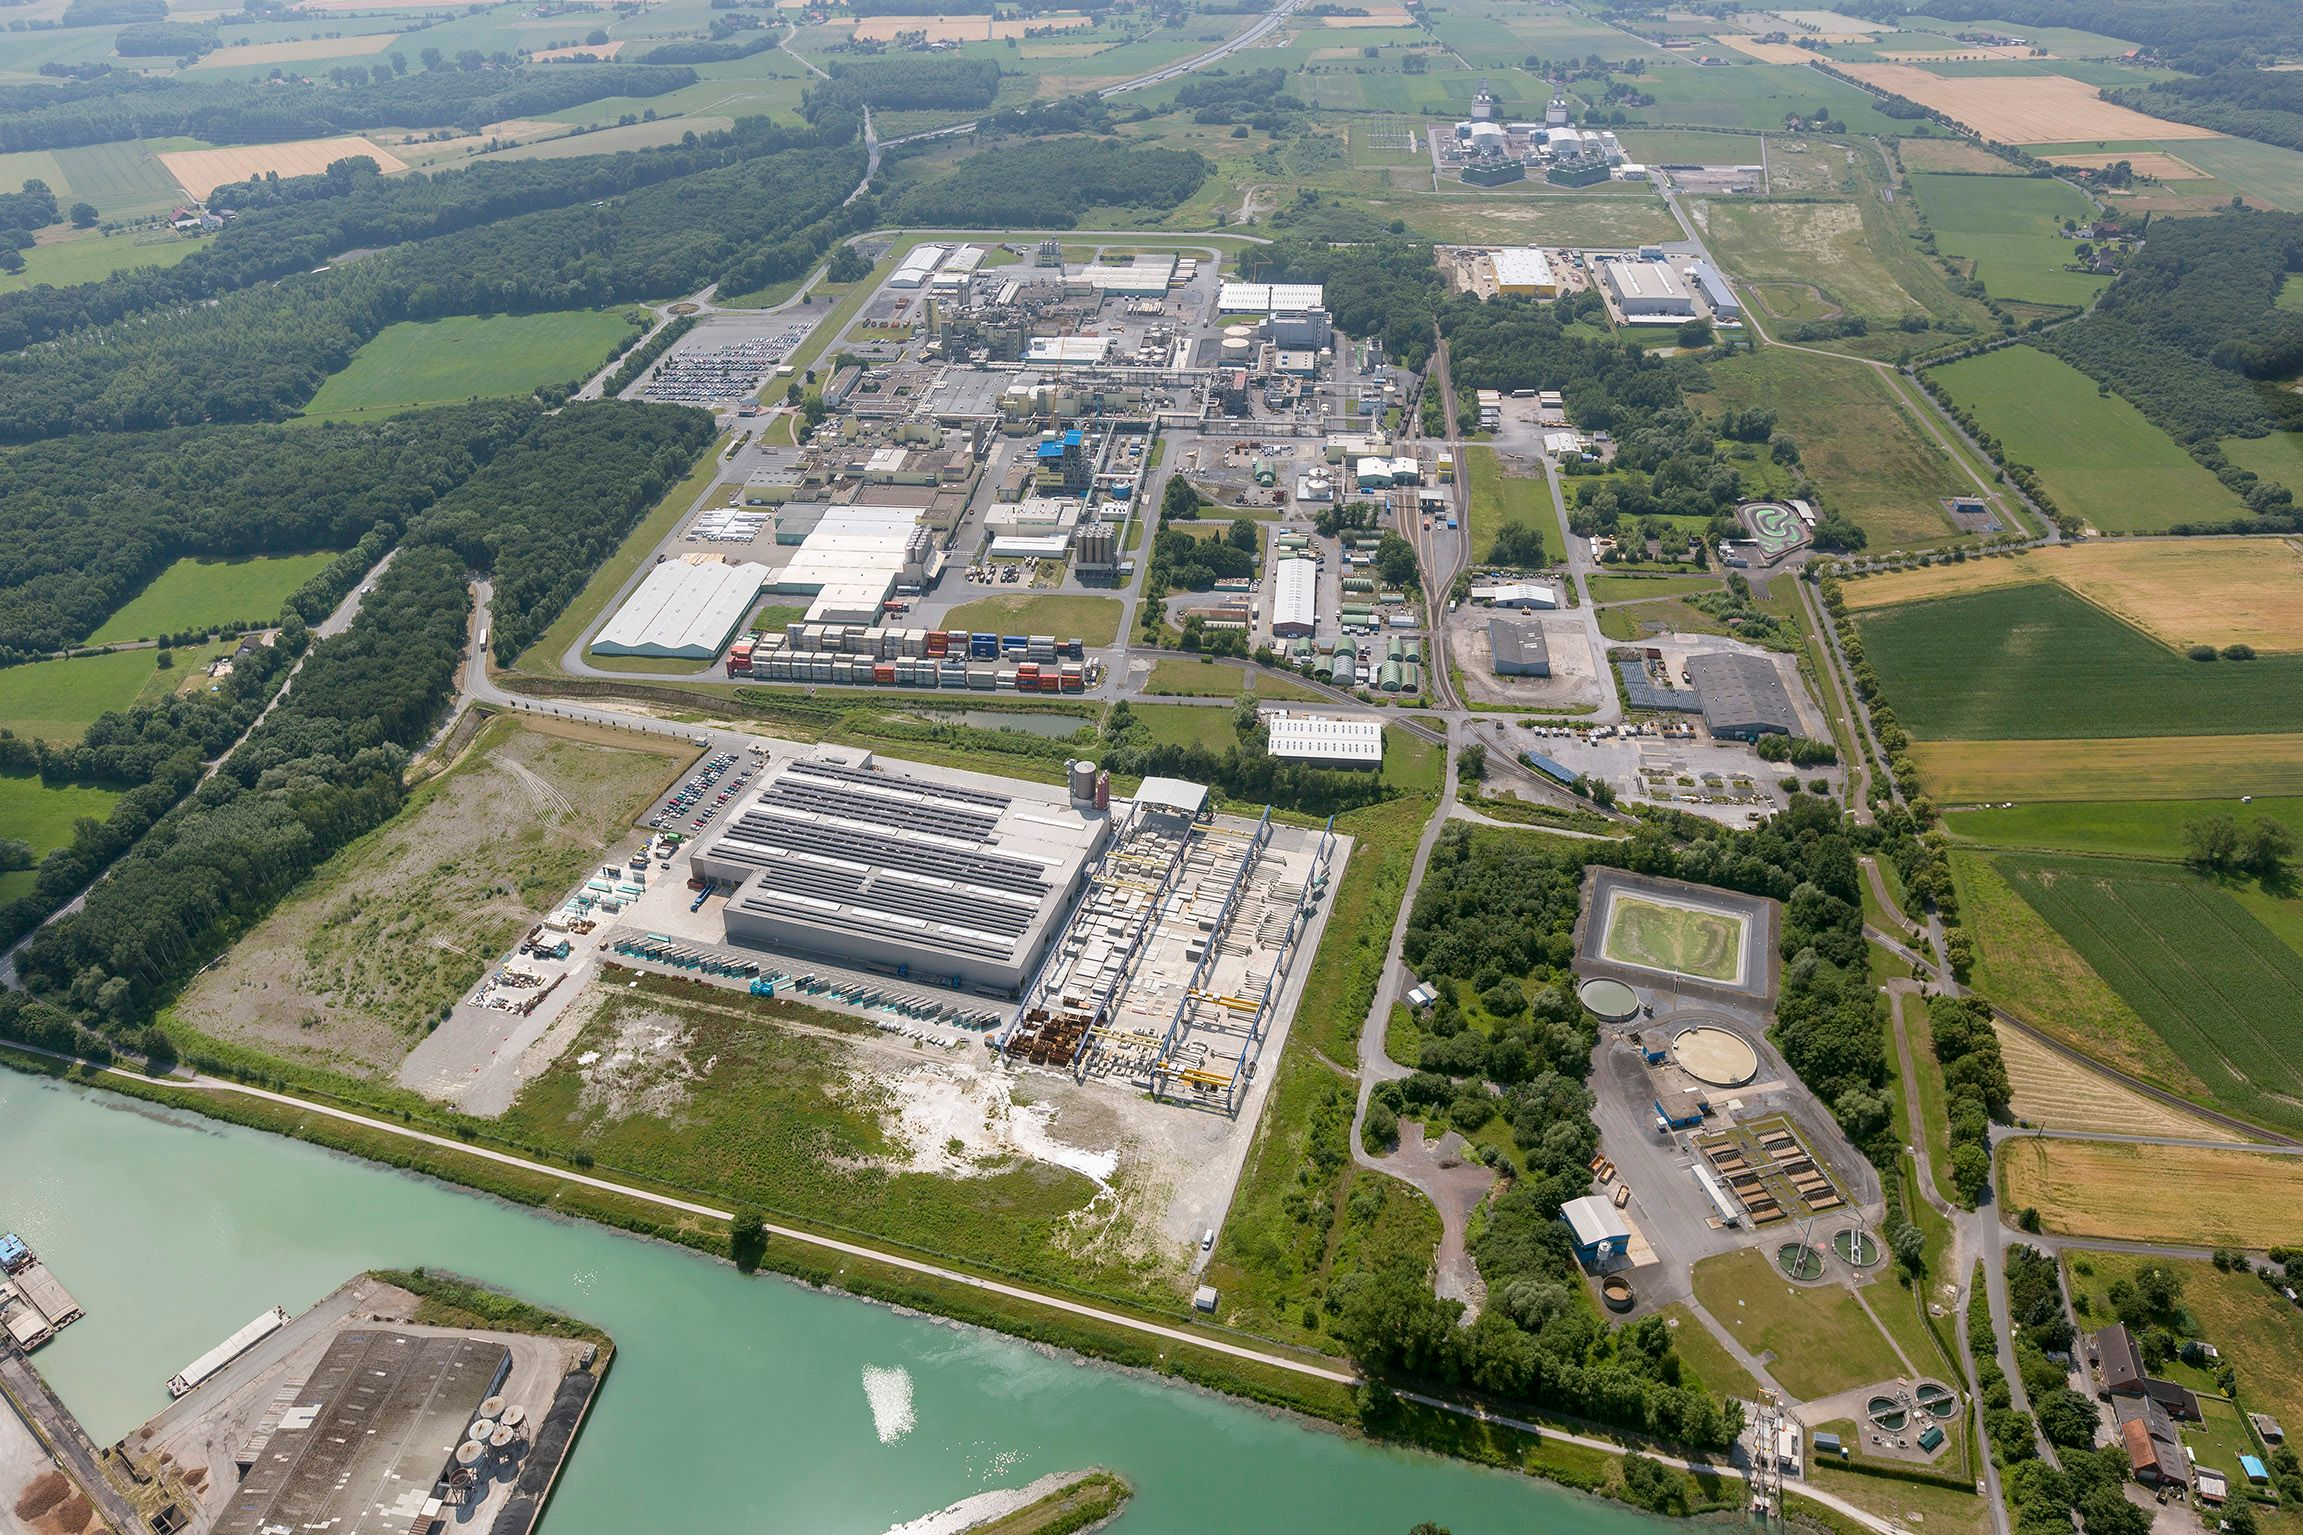 Zytel® HTN polymer production facility in Europe